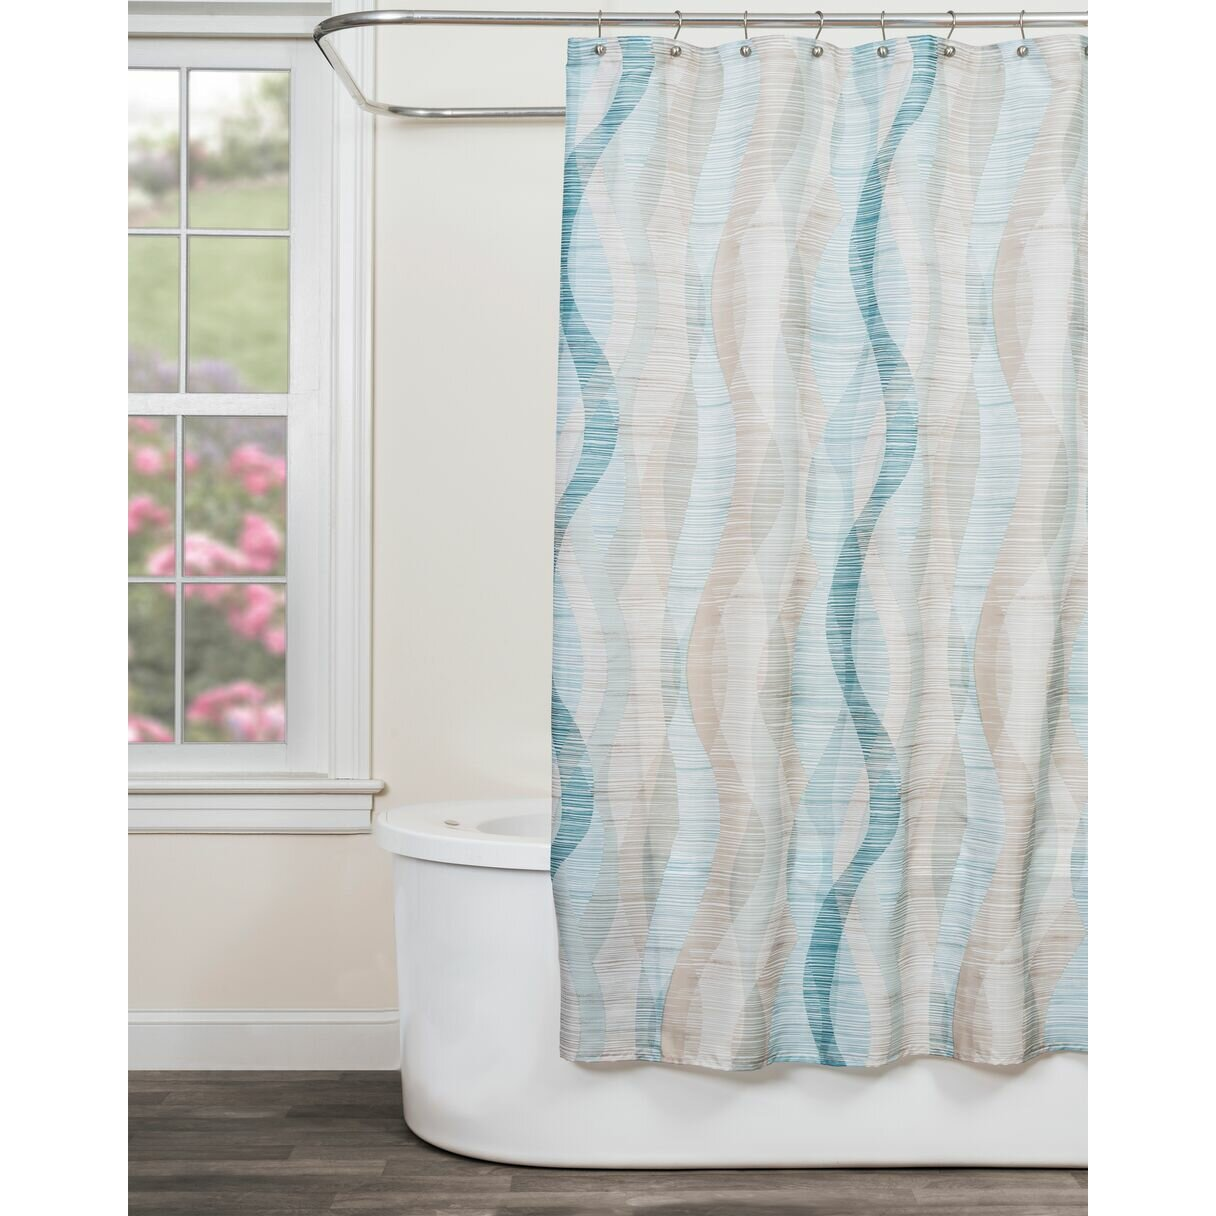 Striped Shower Curtains Youll Love Wayfair - Chocolate coral and gold shower curtain